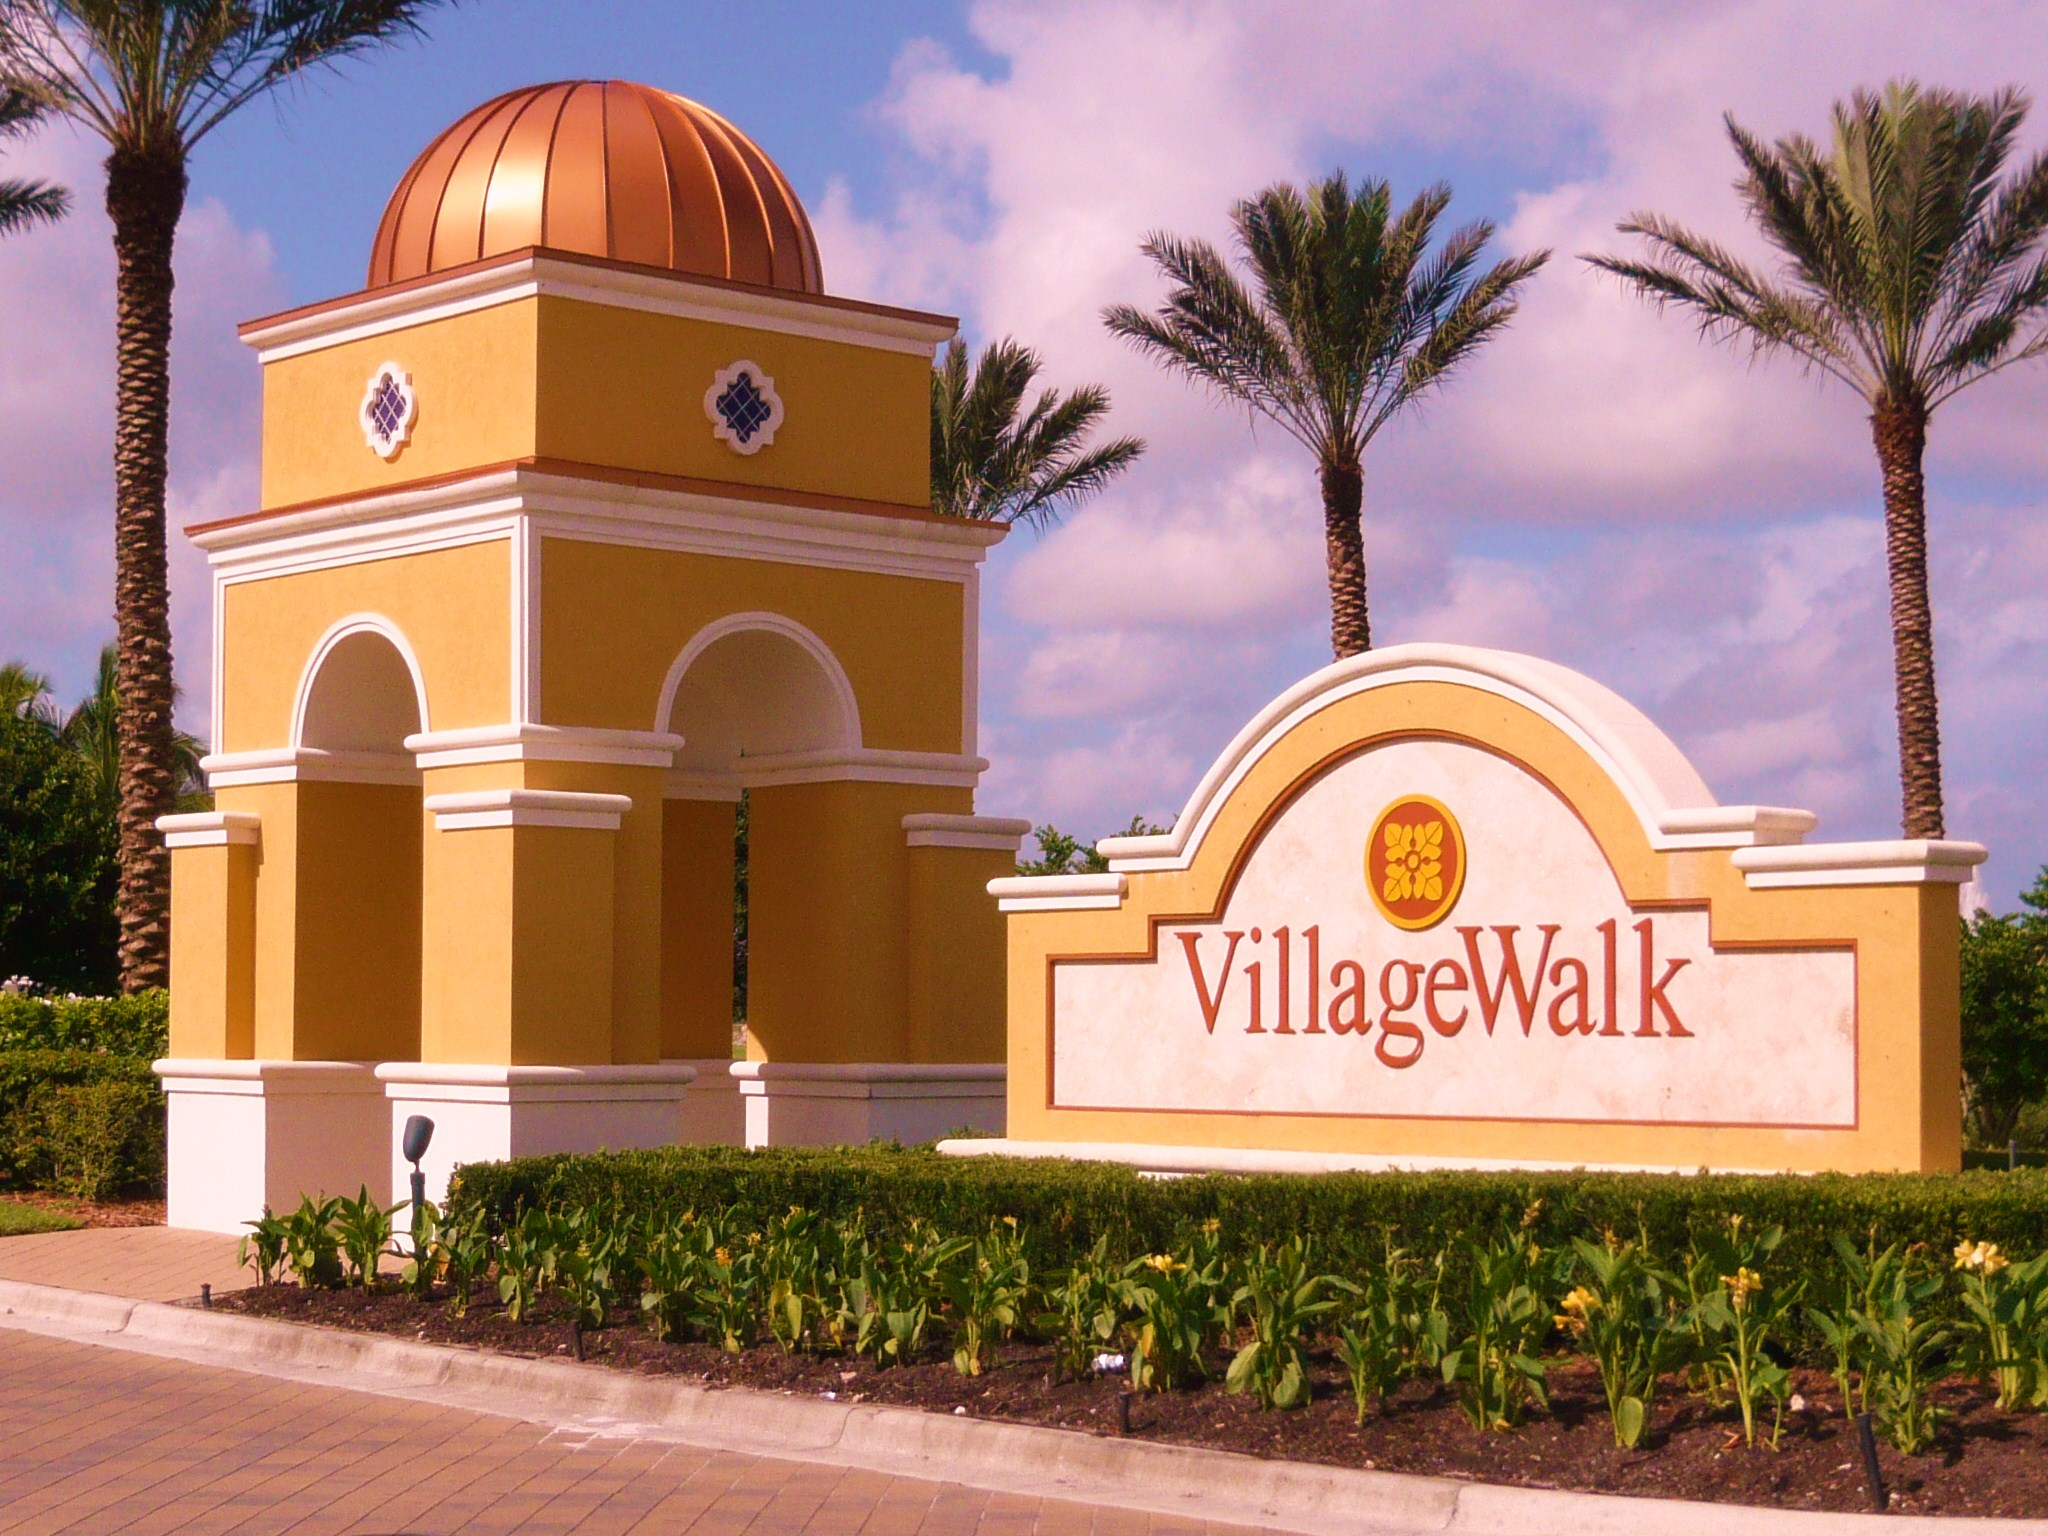 VillageWalk Bonita Springs